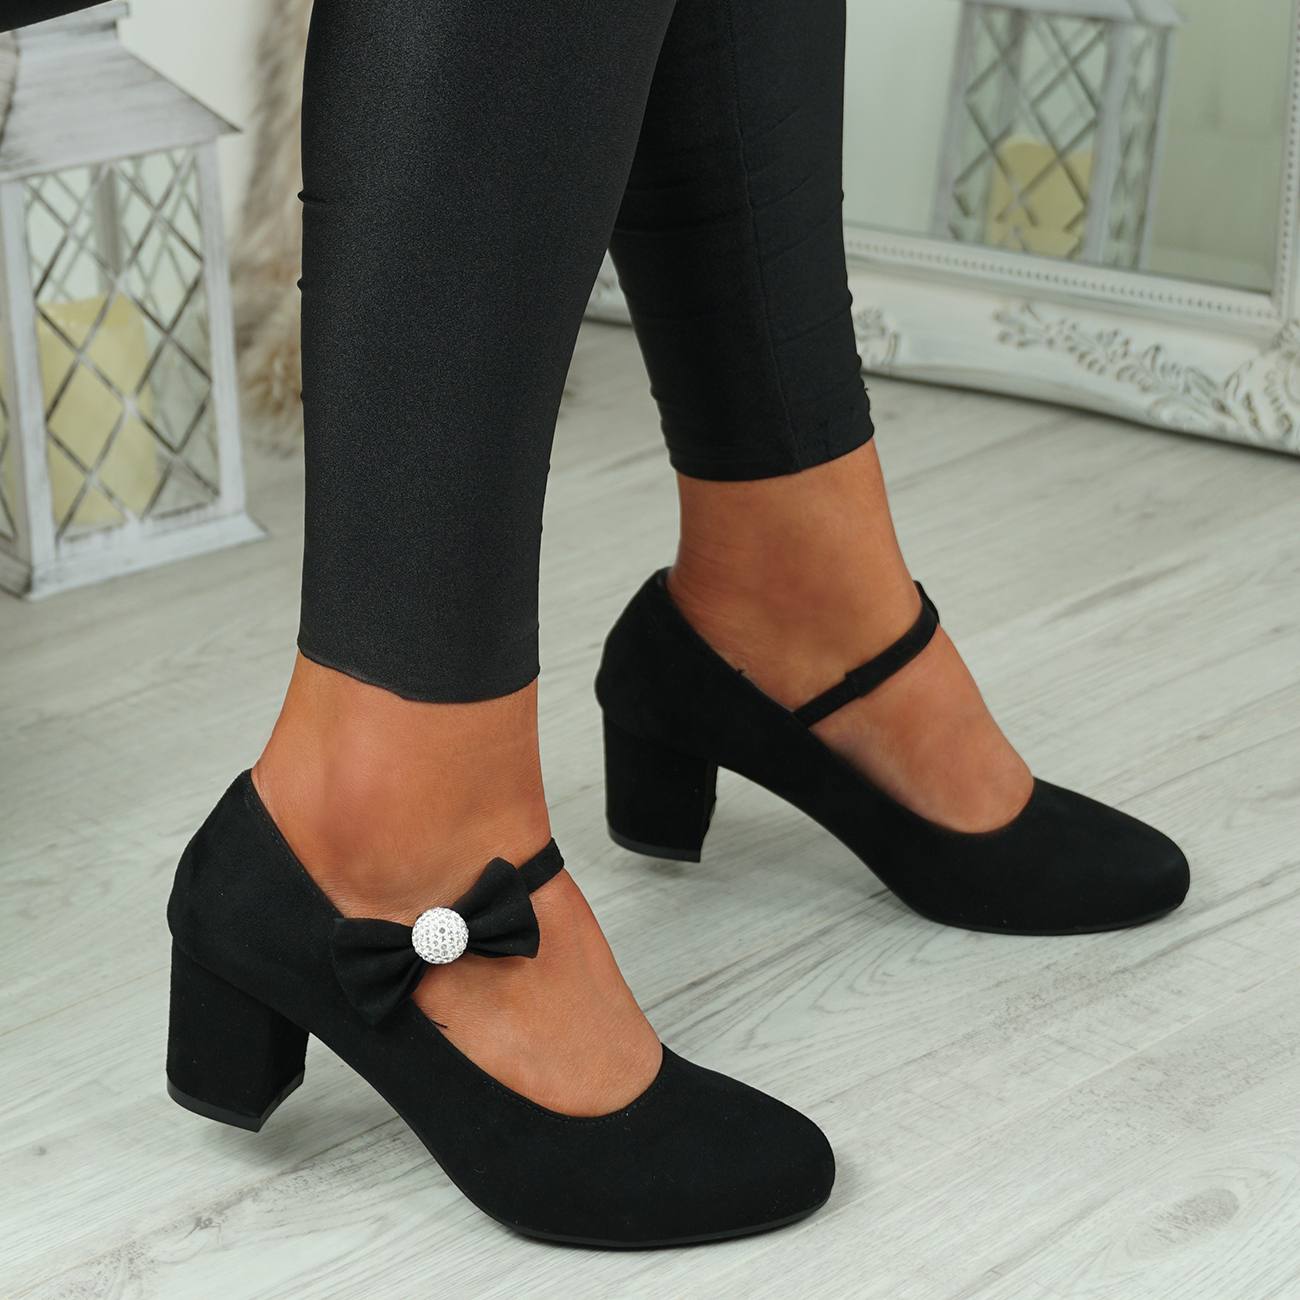 NEW-WOMENS-BLOCK-HEEL-PUMPS-BOW-BUCKLE-STRAP-ROUNDED-TOE-CASUAL-SHOES-SIZE thumbnail 9